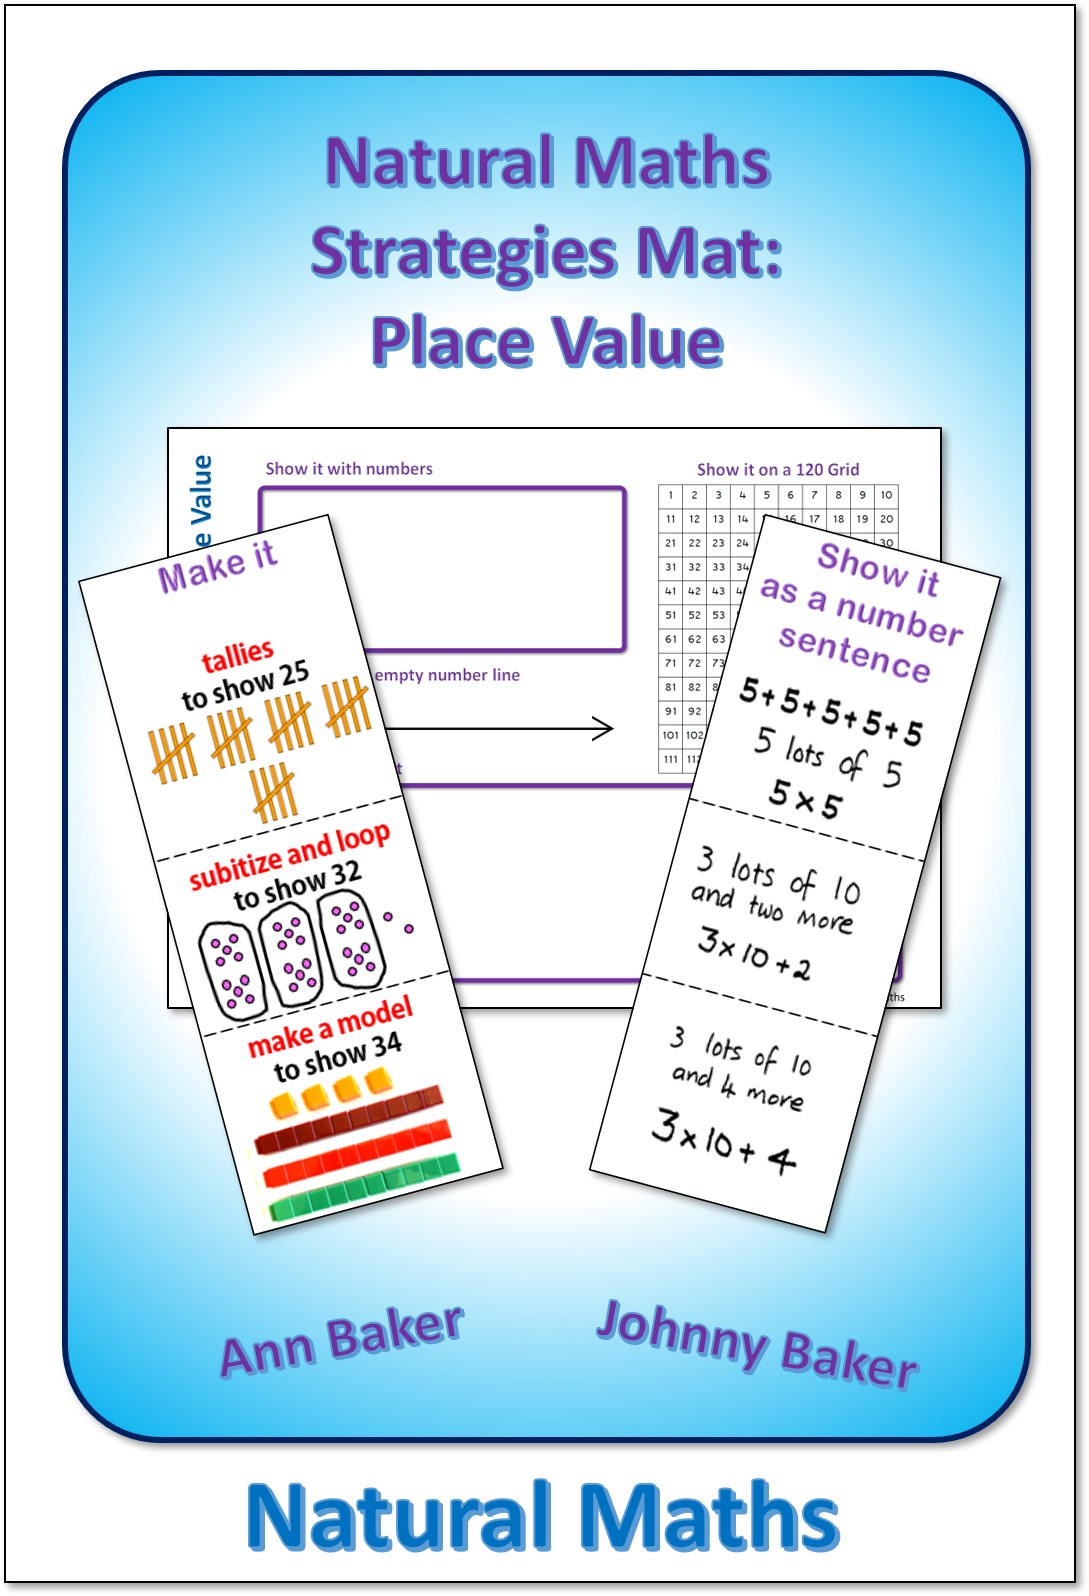 Place Value Mat | Natural Maths with Printable Multiplication Strategy Mat